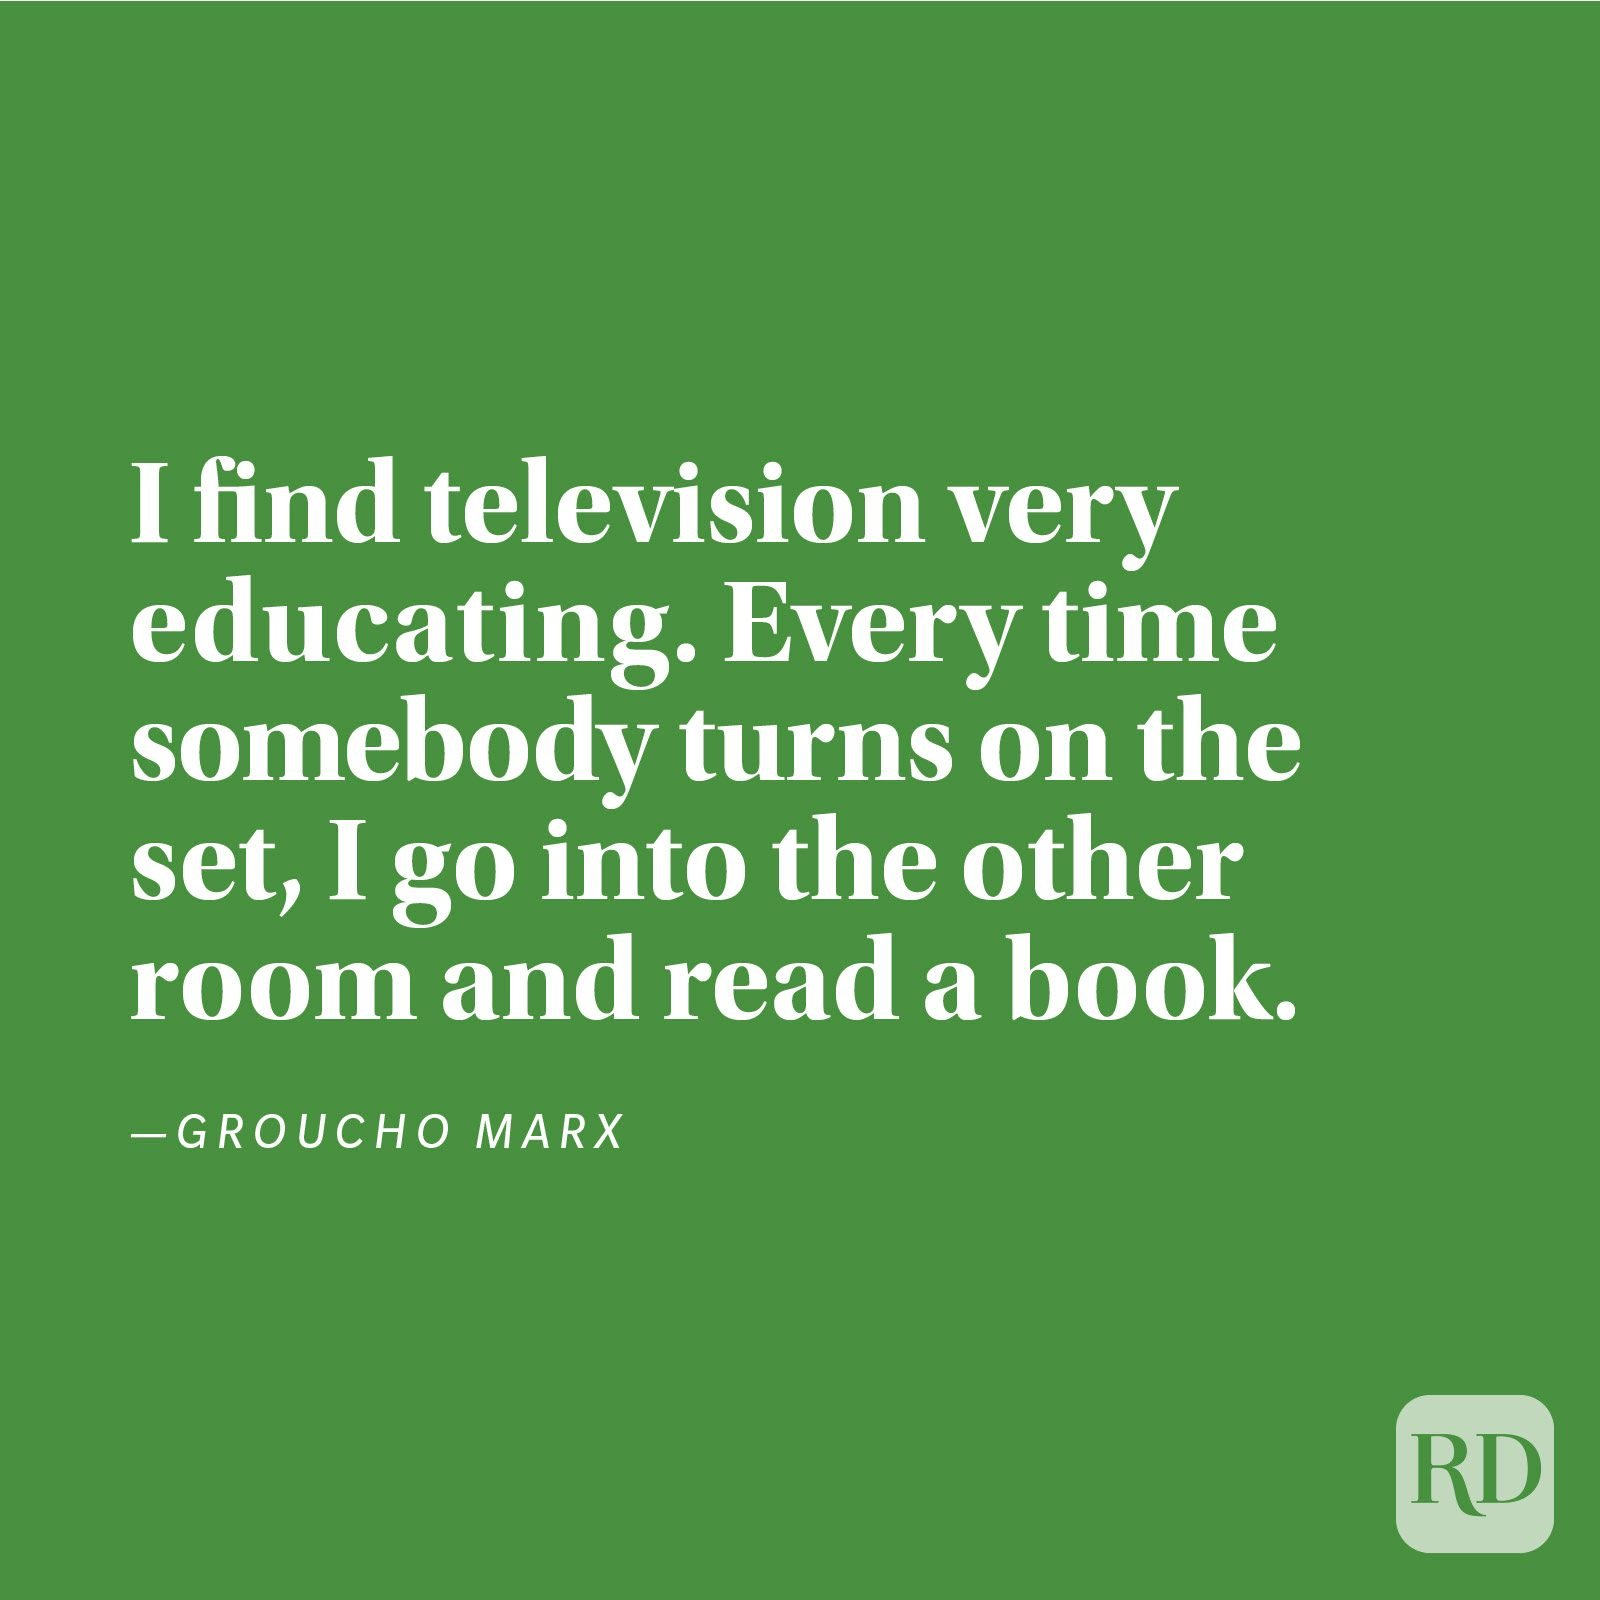 """I find television very educating. Every time somebody turns on the set, I go into the other room and read a book."" —Groucho Marx"